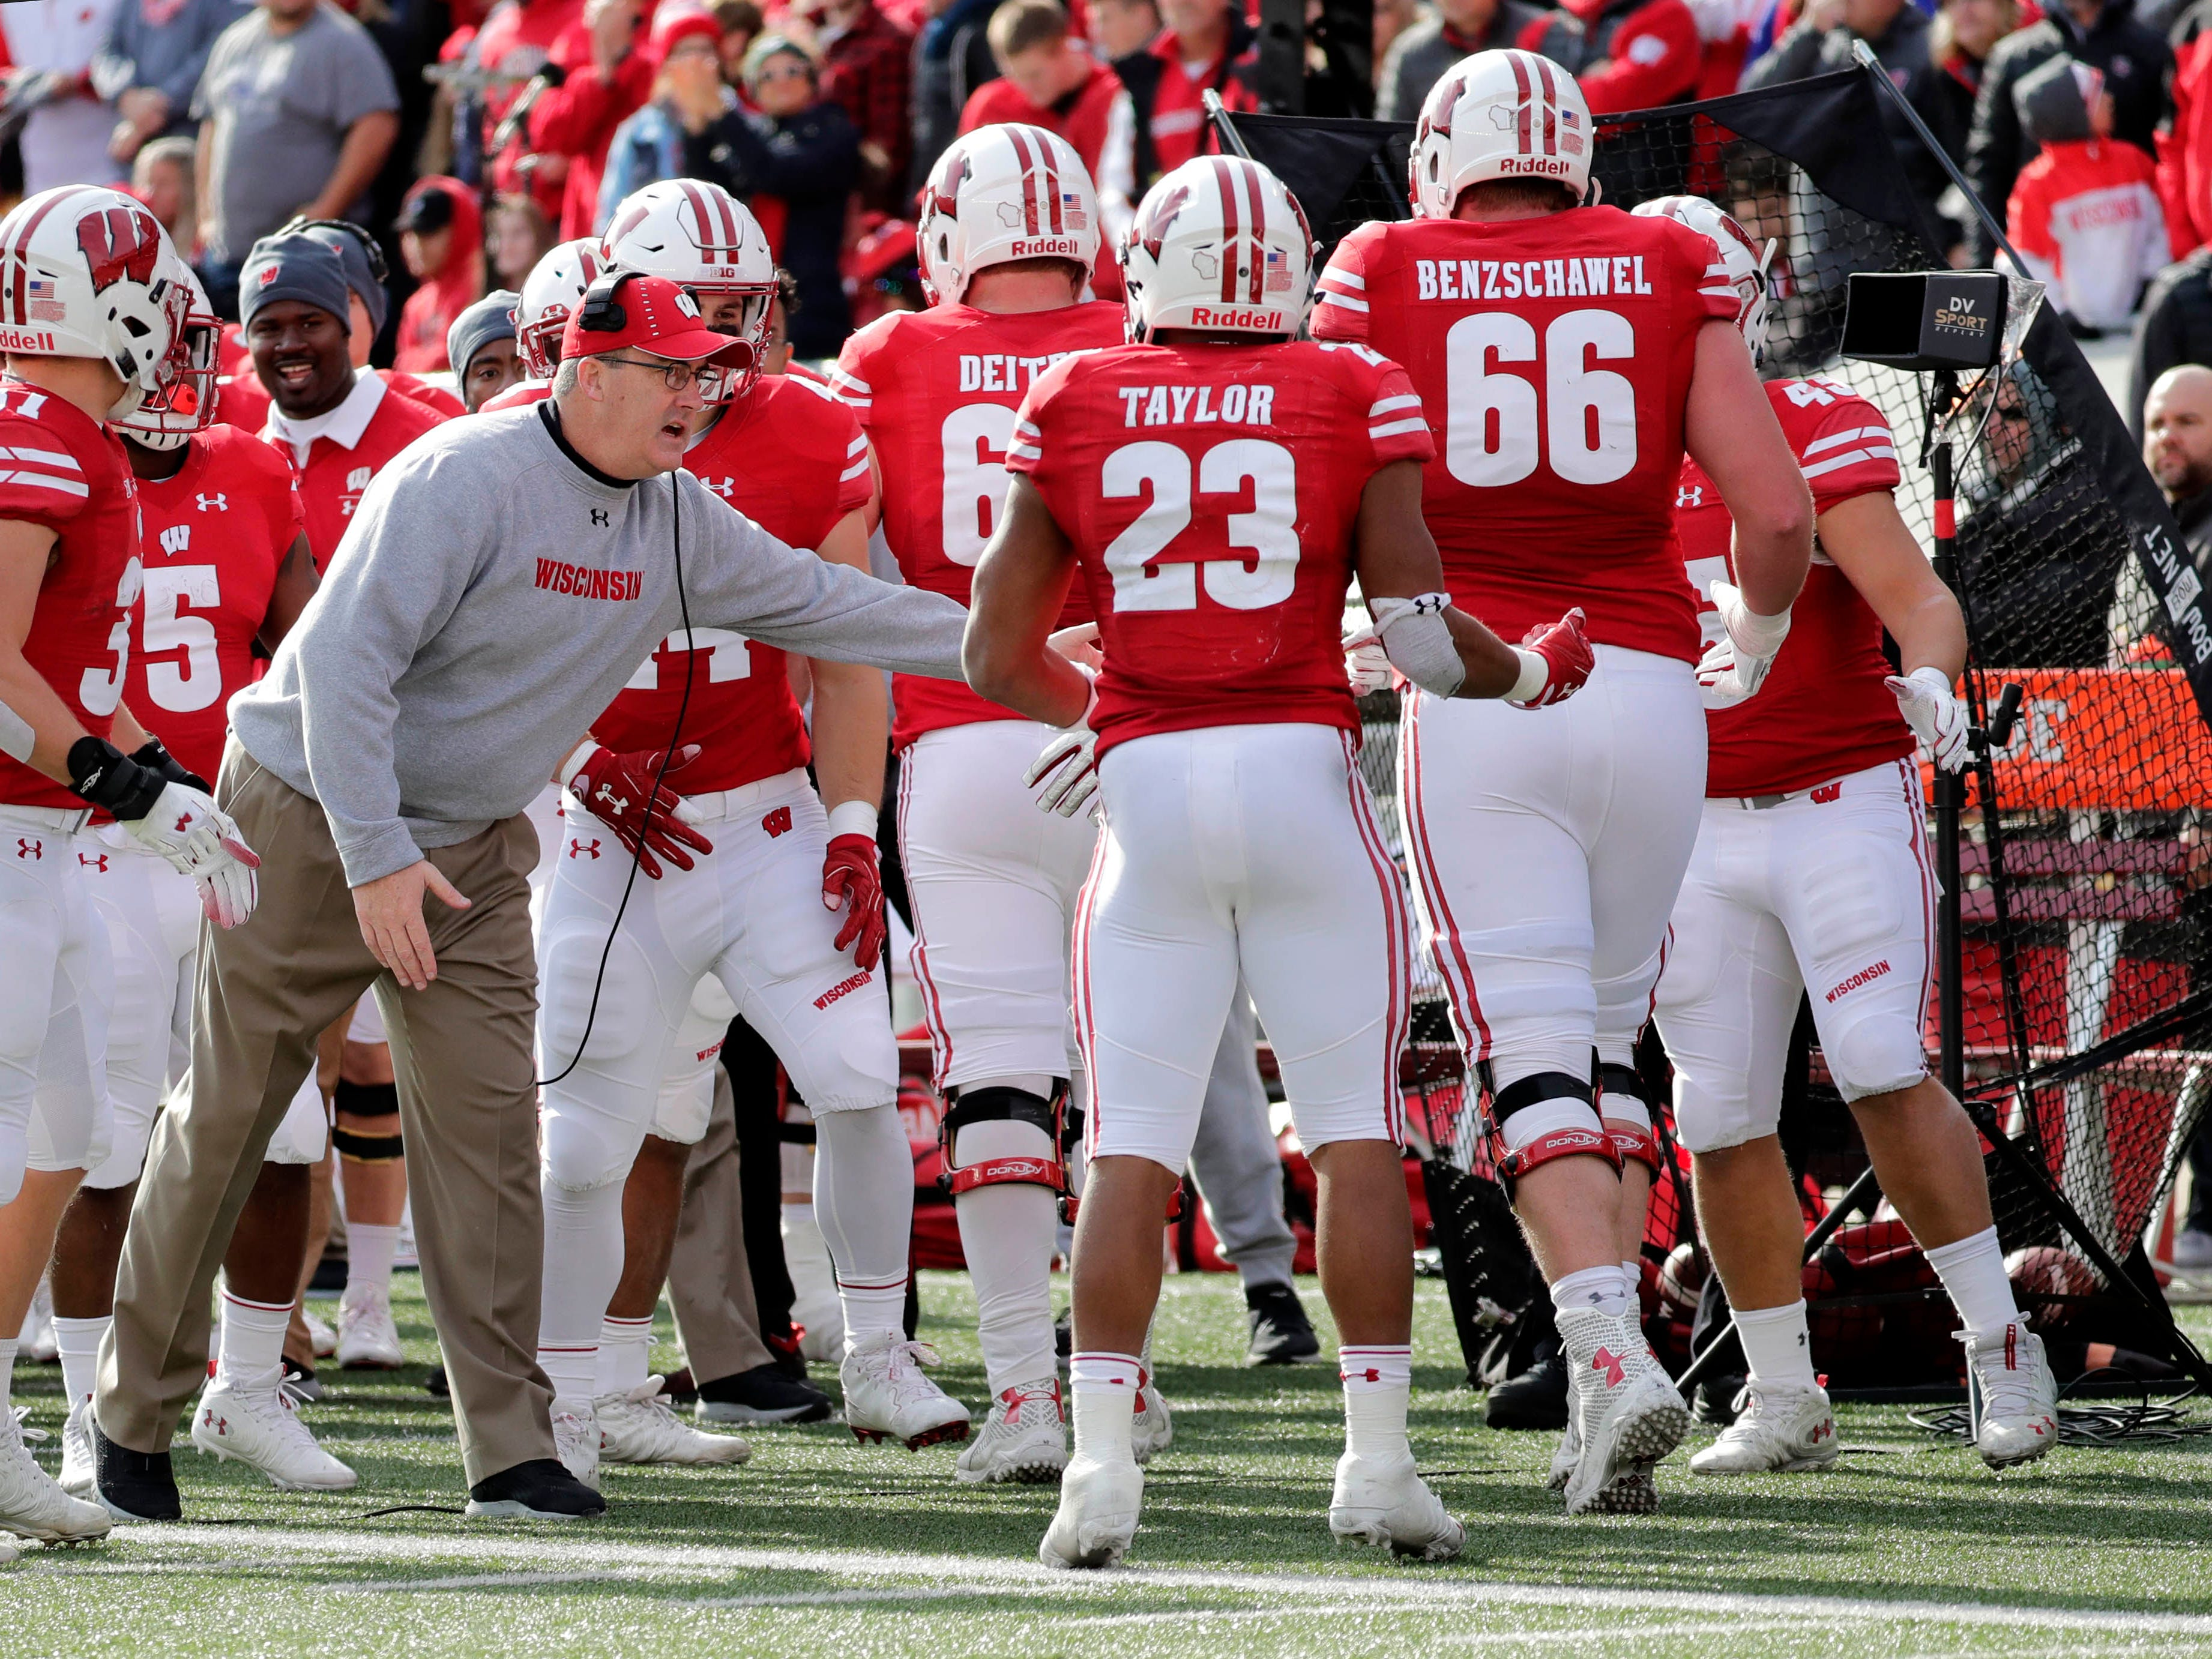 UW coach Paul Chryst congratulates Jonathan Taylor after the running back scored a touchdown against Rutgers on Saturday.